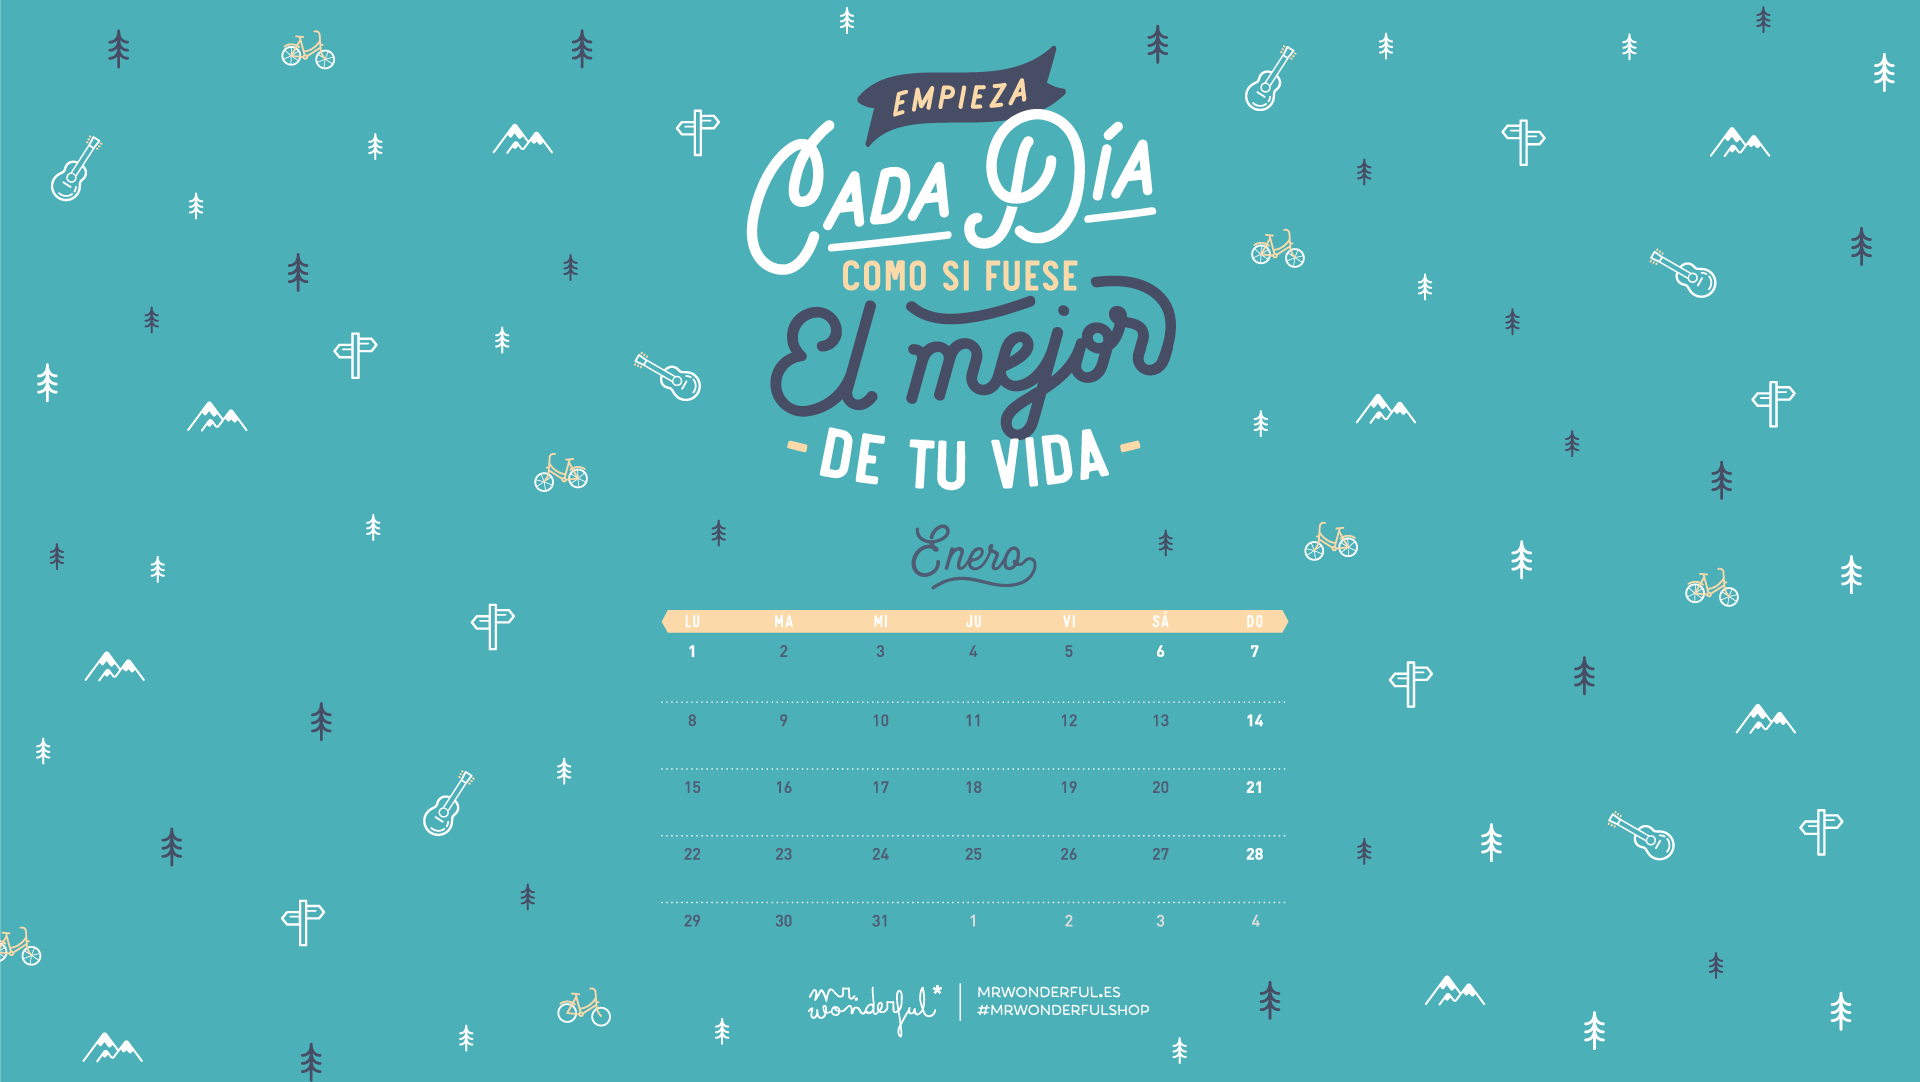 Imagenes Para Fondos De Pantalla 2019 Celulares Pc: Fondos De Pantalla Descargables Mr Wonderful 2018